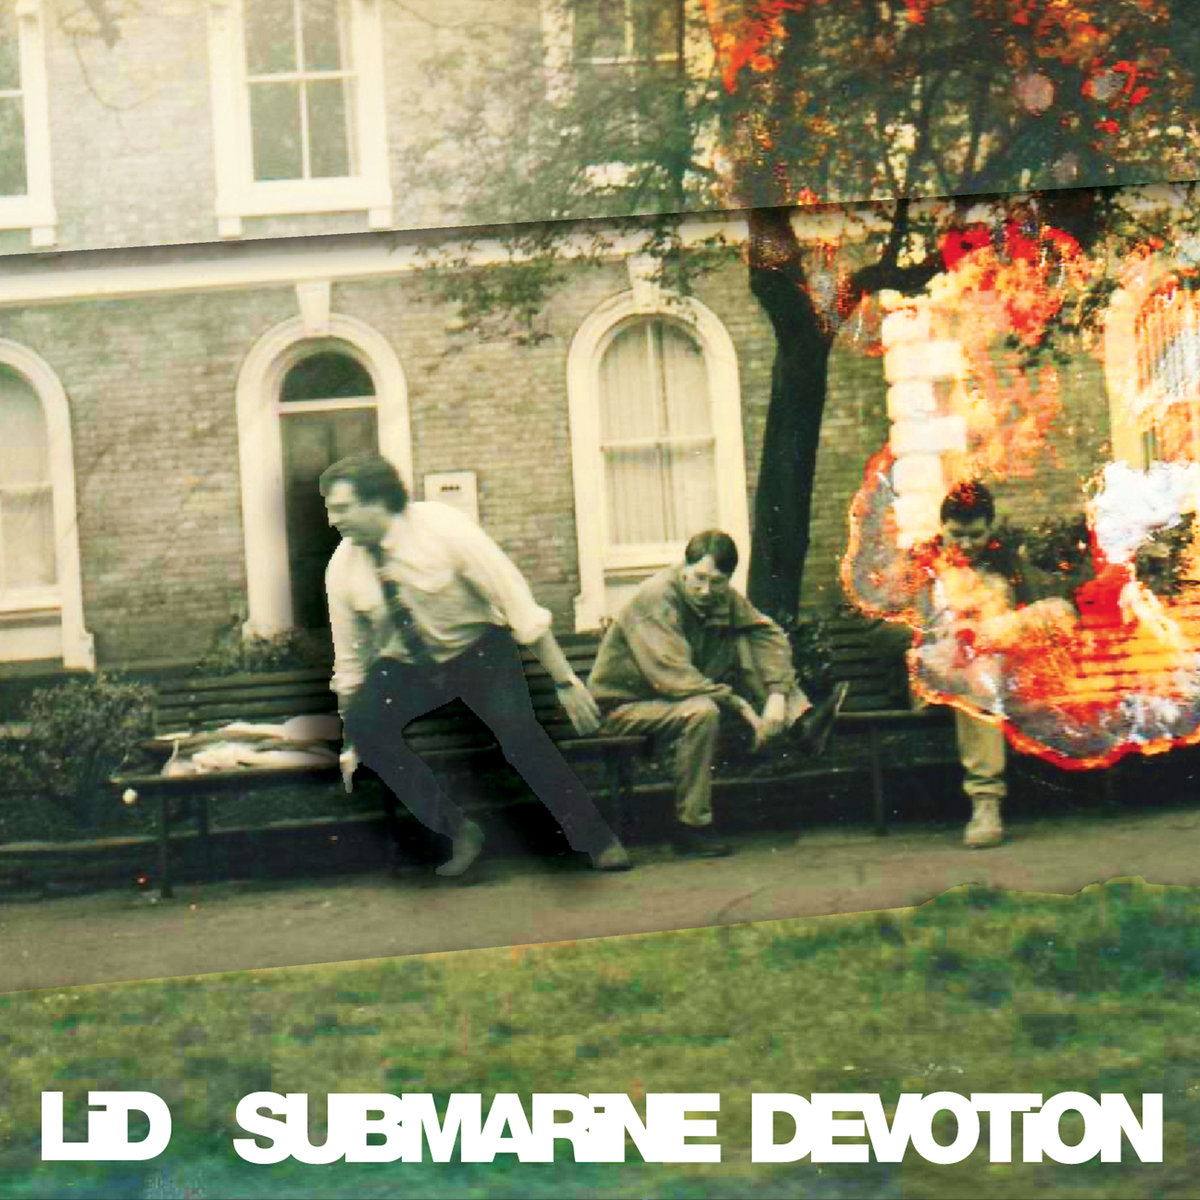 LiD Submarine Devotion artwork